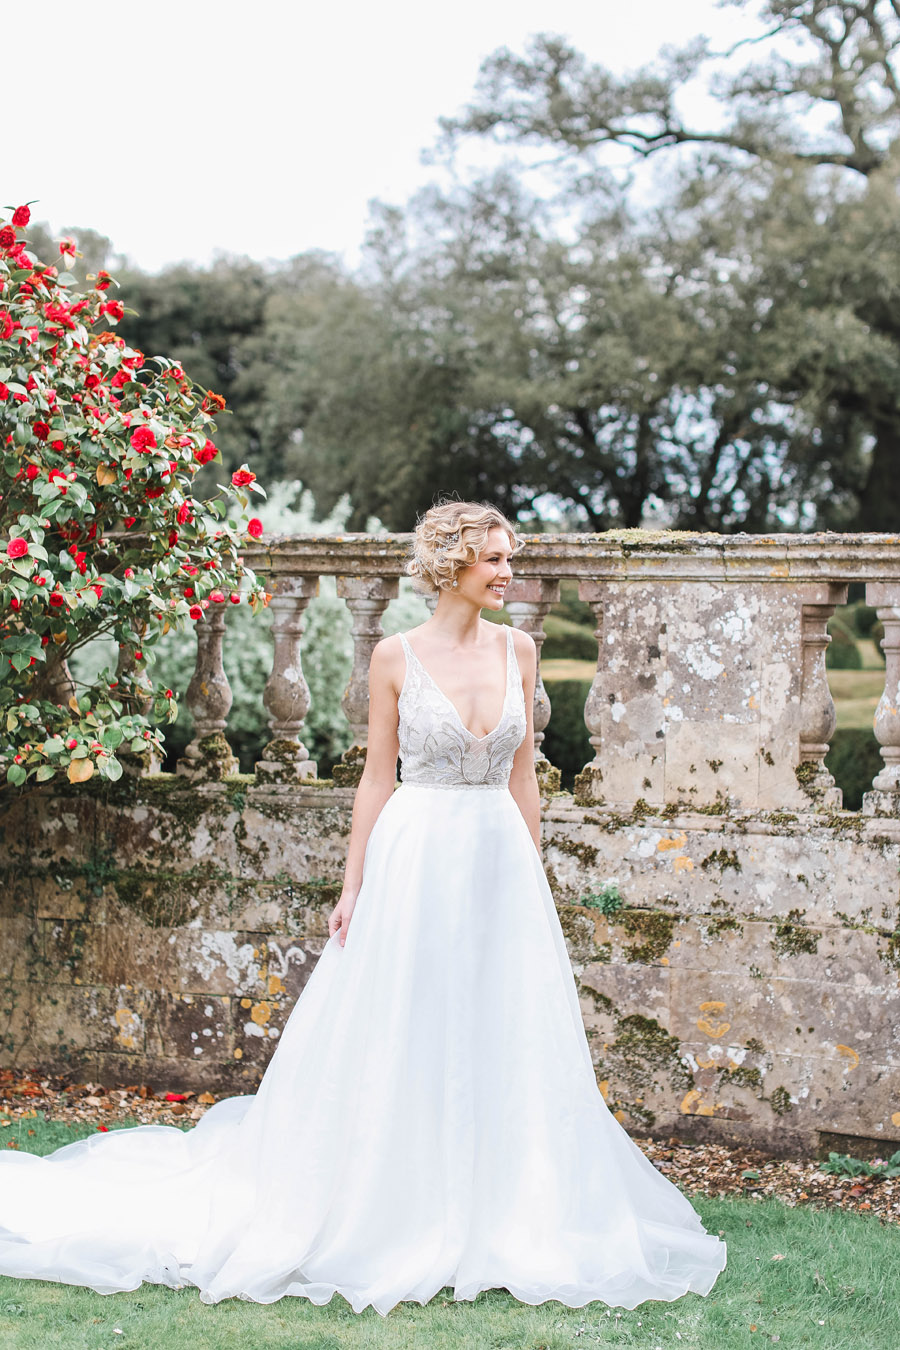 Romantic wedding ideas from Hale Park, photo by Charlotte Wise Photography (12)